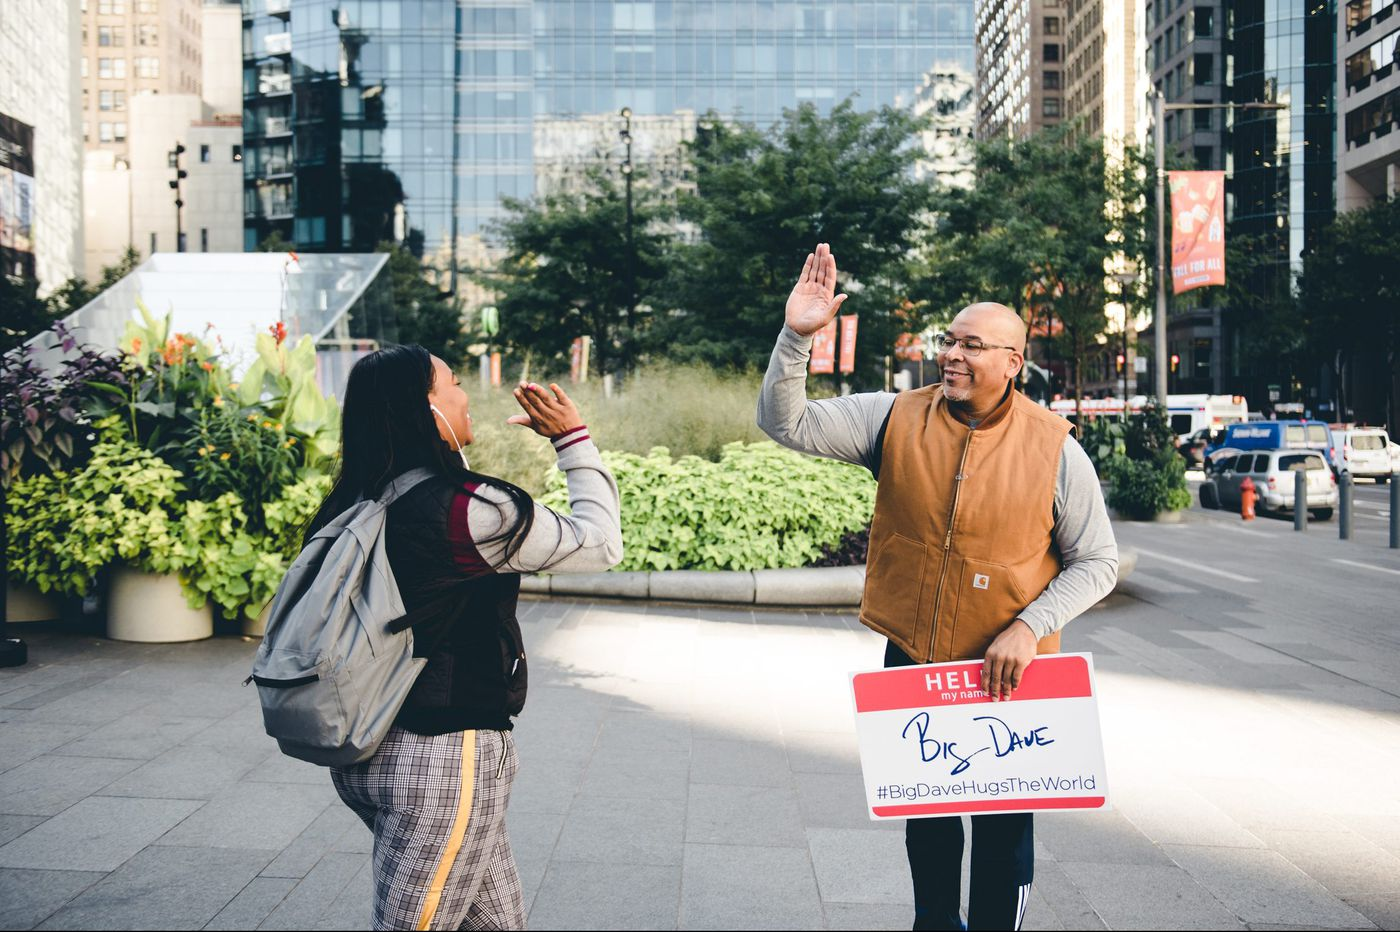 Free high fives and hugs: Philadelphia's 'Big Dave' delivers 250,000 of them in 36 countries across the world